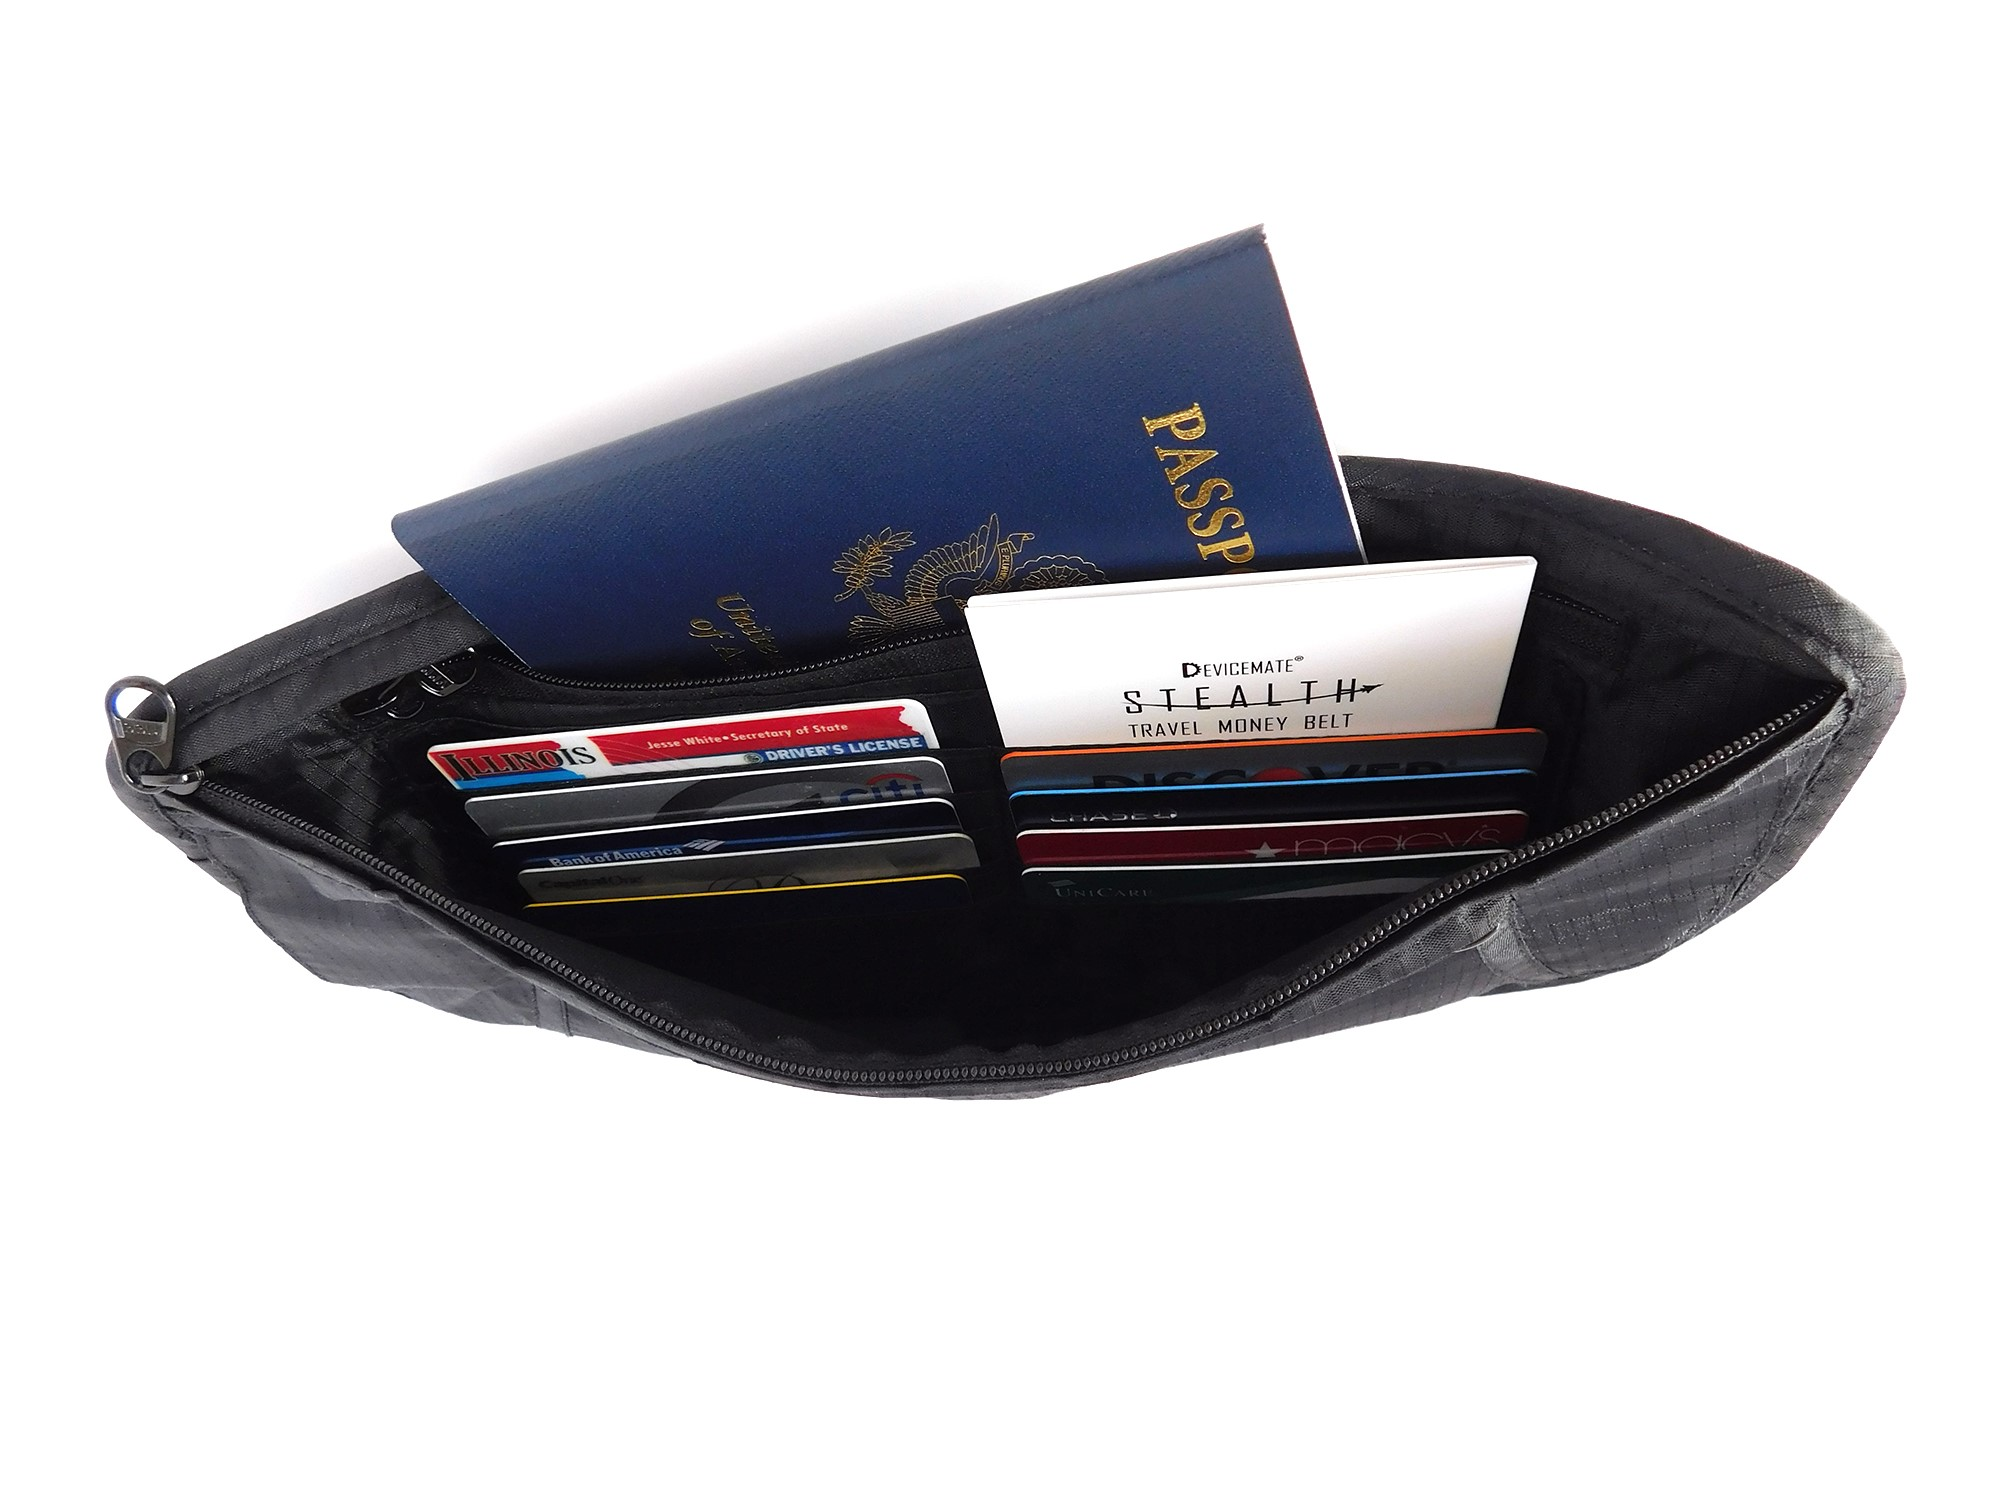 Card & Id Holders Coin Purses & Holders Russian Black Buckle Solid Color Casual Passport Cover Built In Rfid Blocking Protect Personal Information